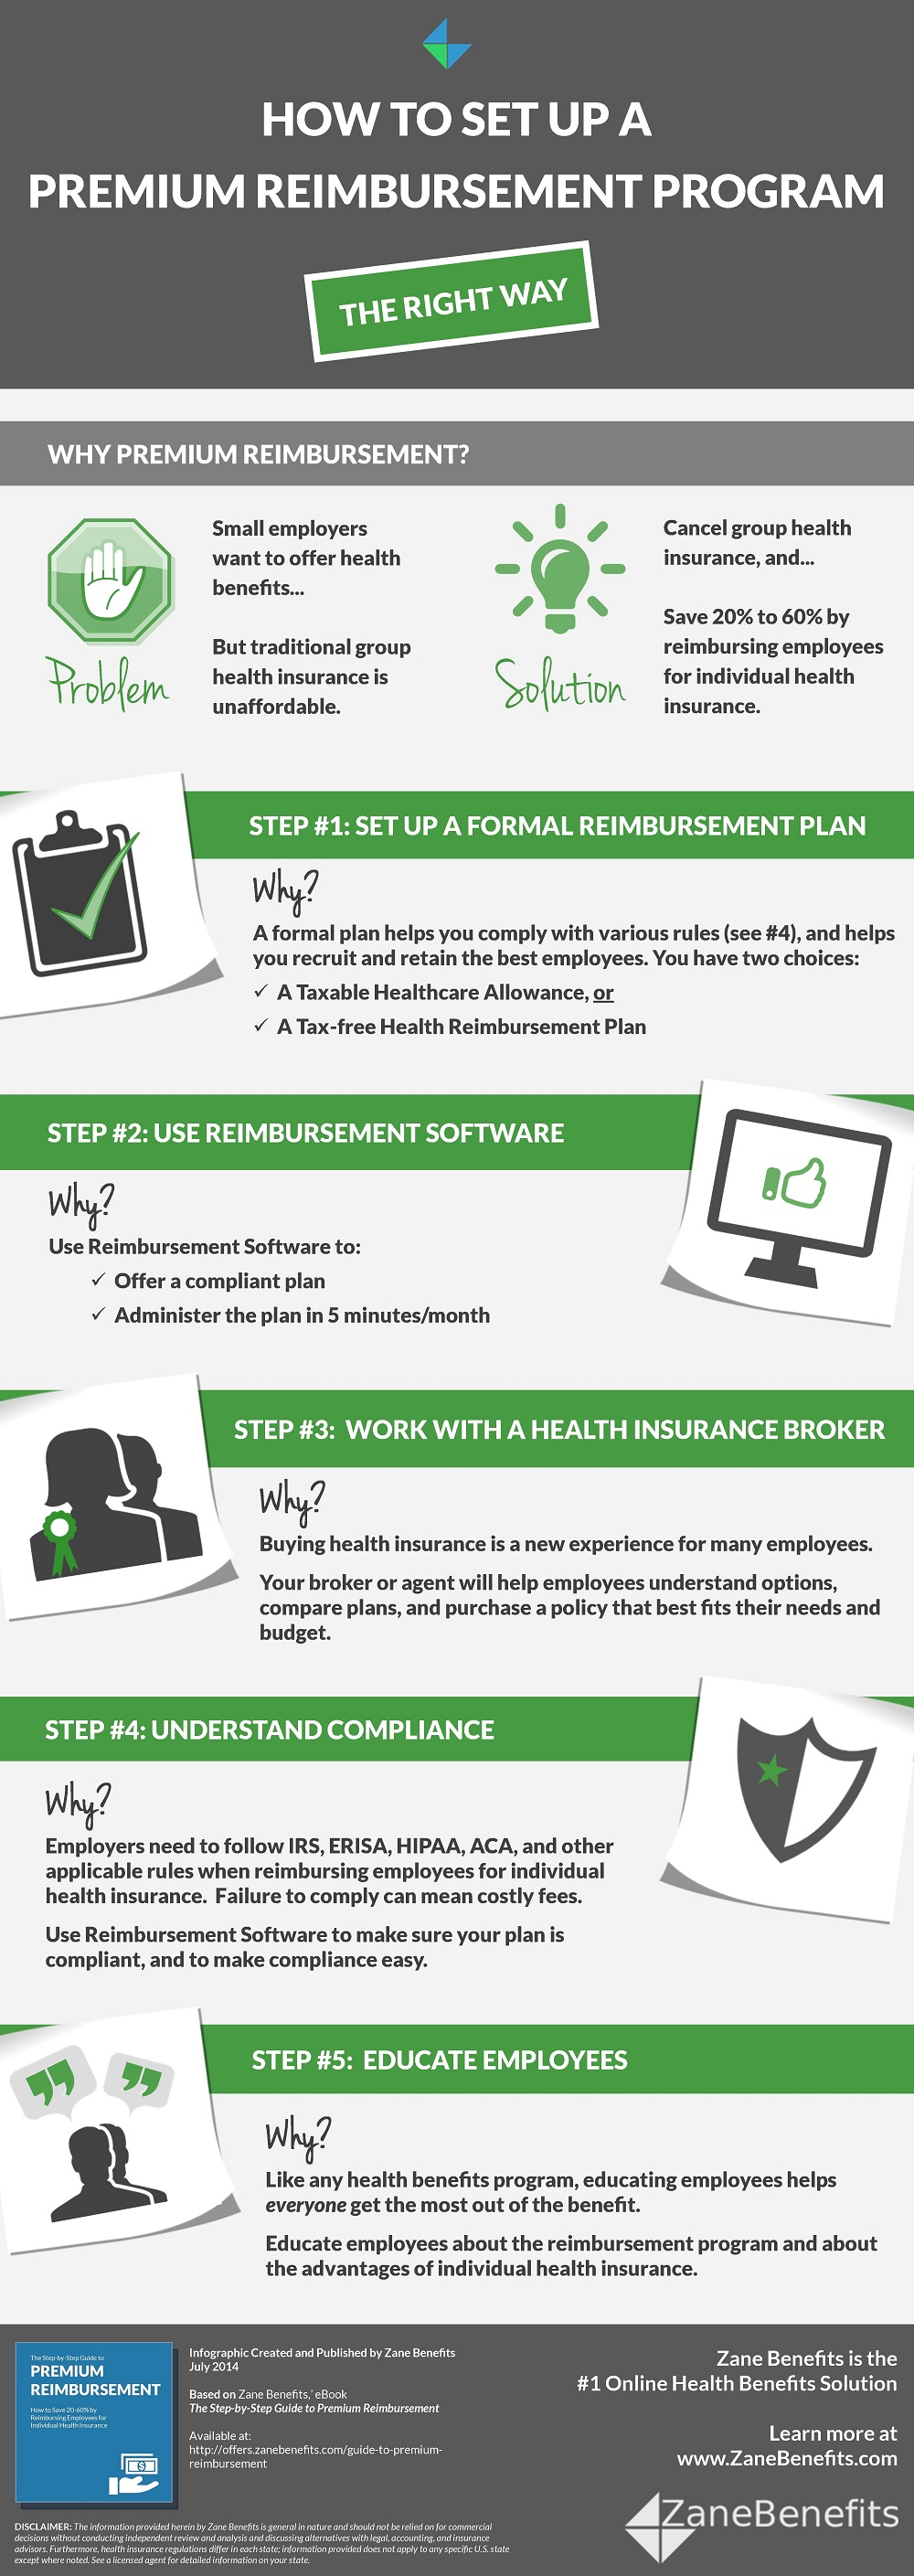 Infographic_-_How_to_Set_Up_a_Premium_Reimbursement_Program_The_Right_Way